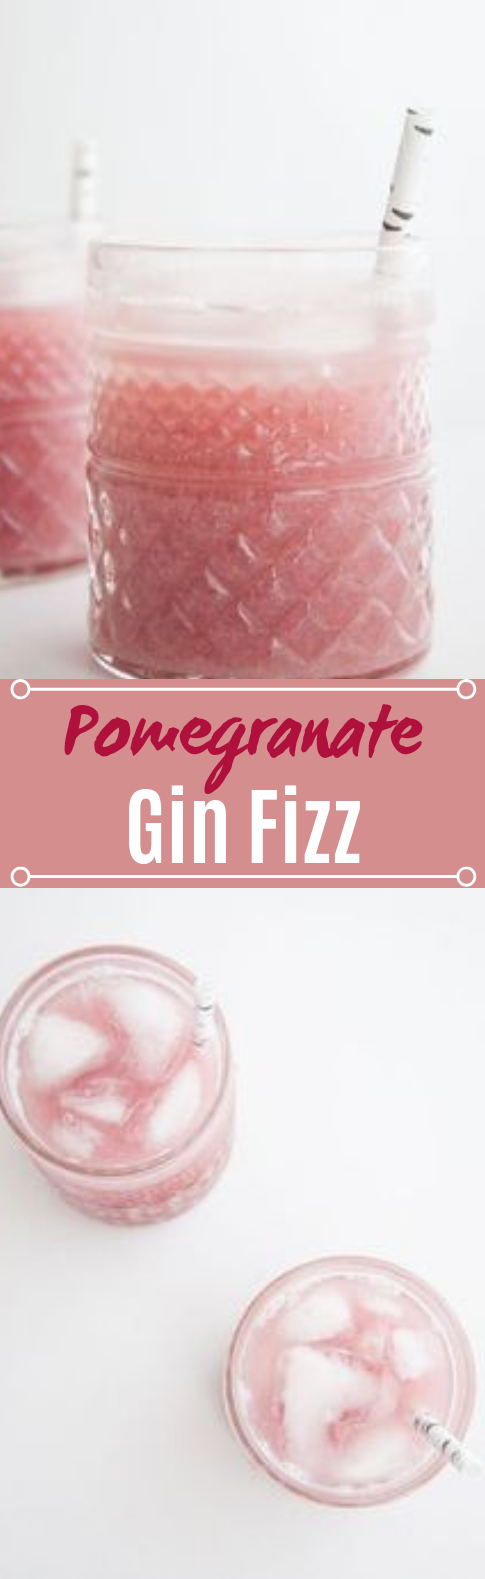 Pomegranate Gin Fizz #drinks #cocktails